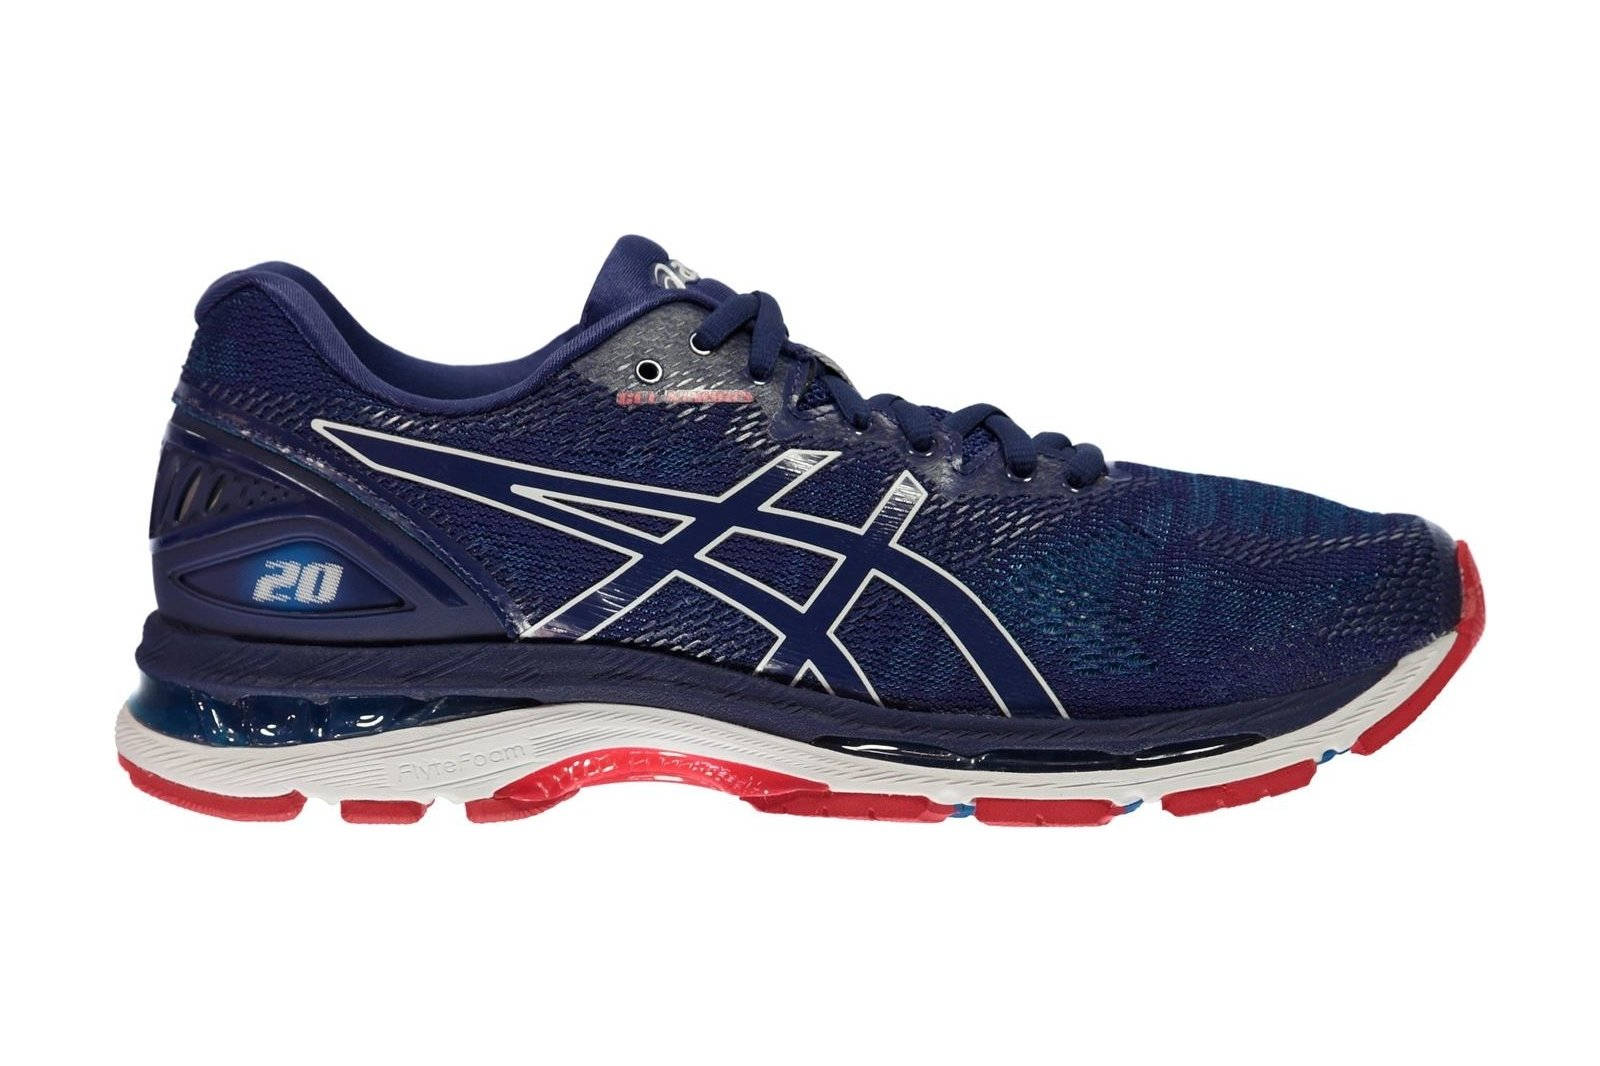 Gel Nimbus 20 Mens Running Shoes